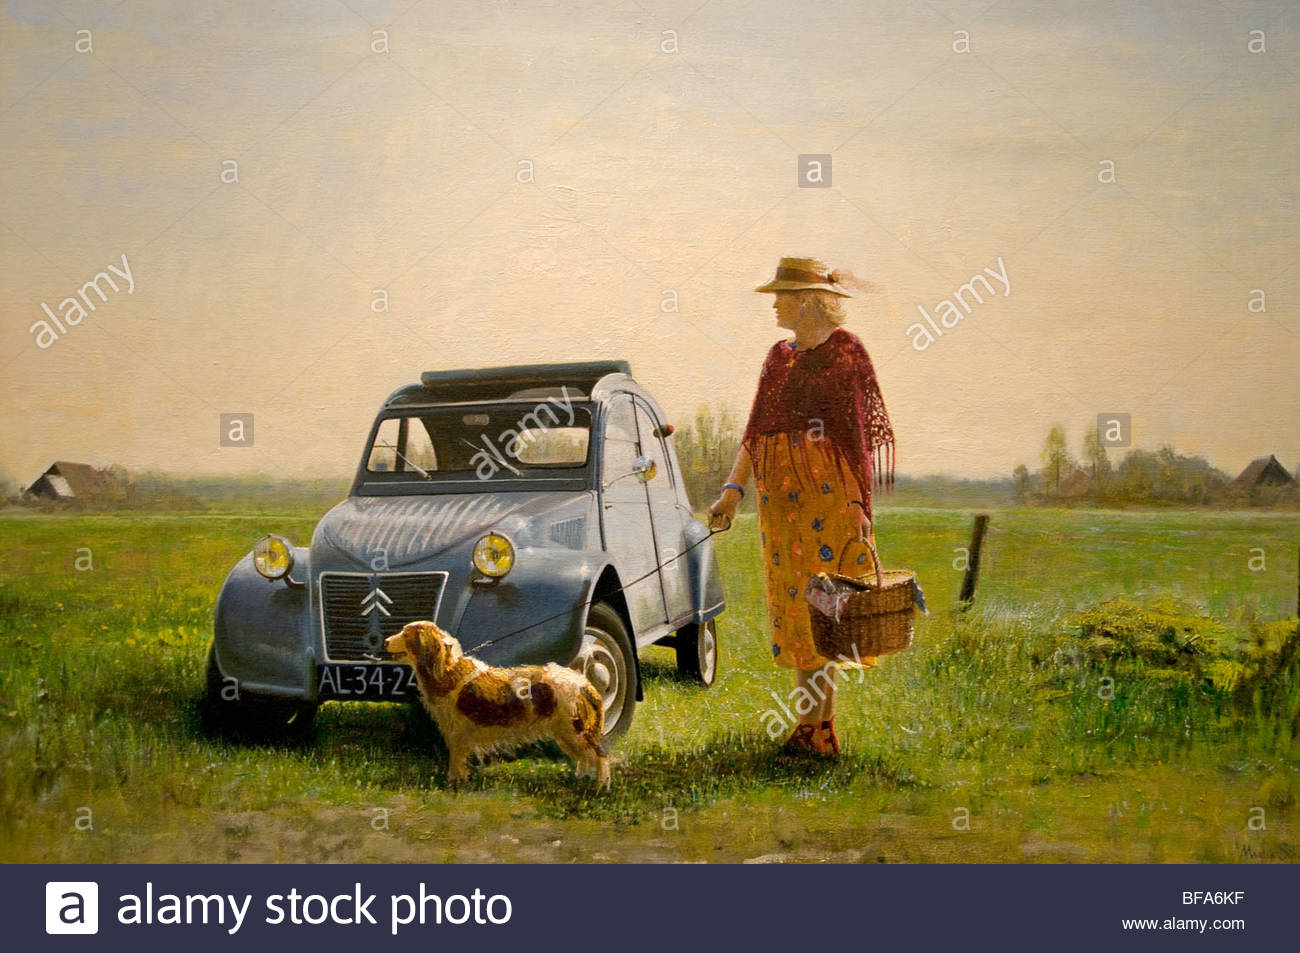 martin sijbesma 2 cv citroen woman dog art gallery amsterdam stock photo  royalty free image